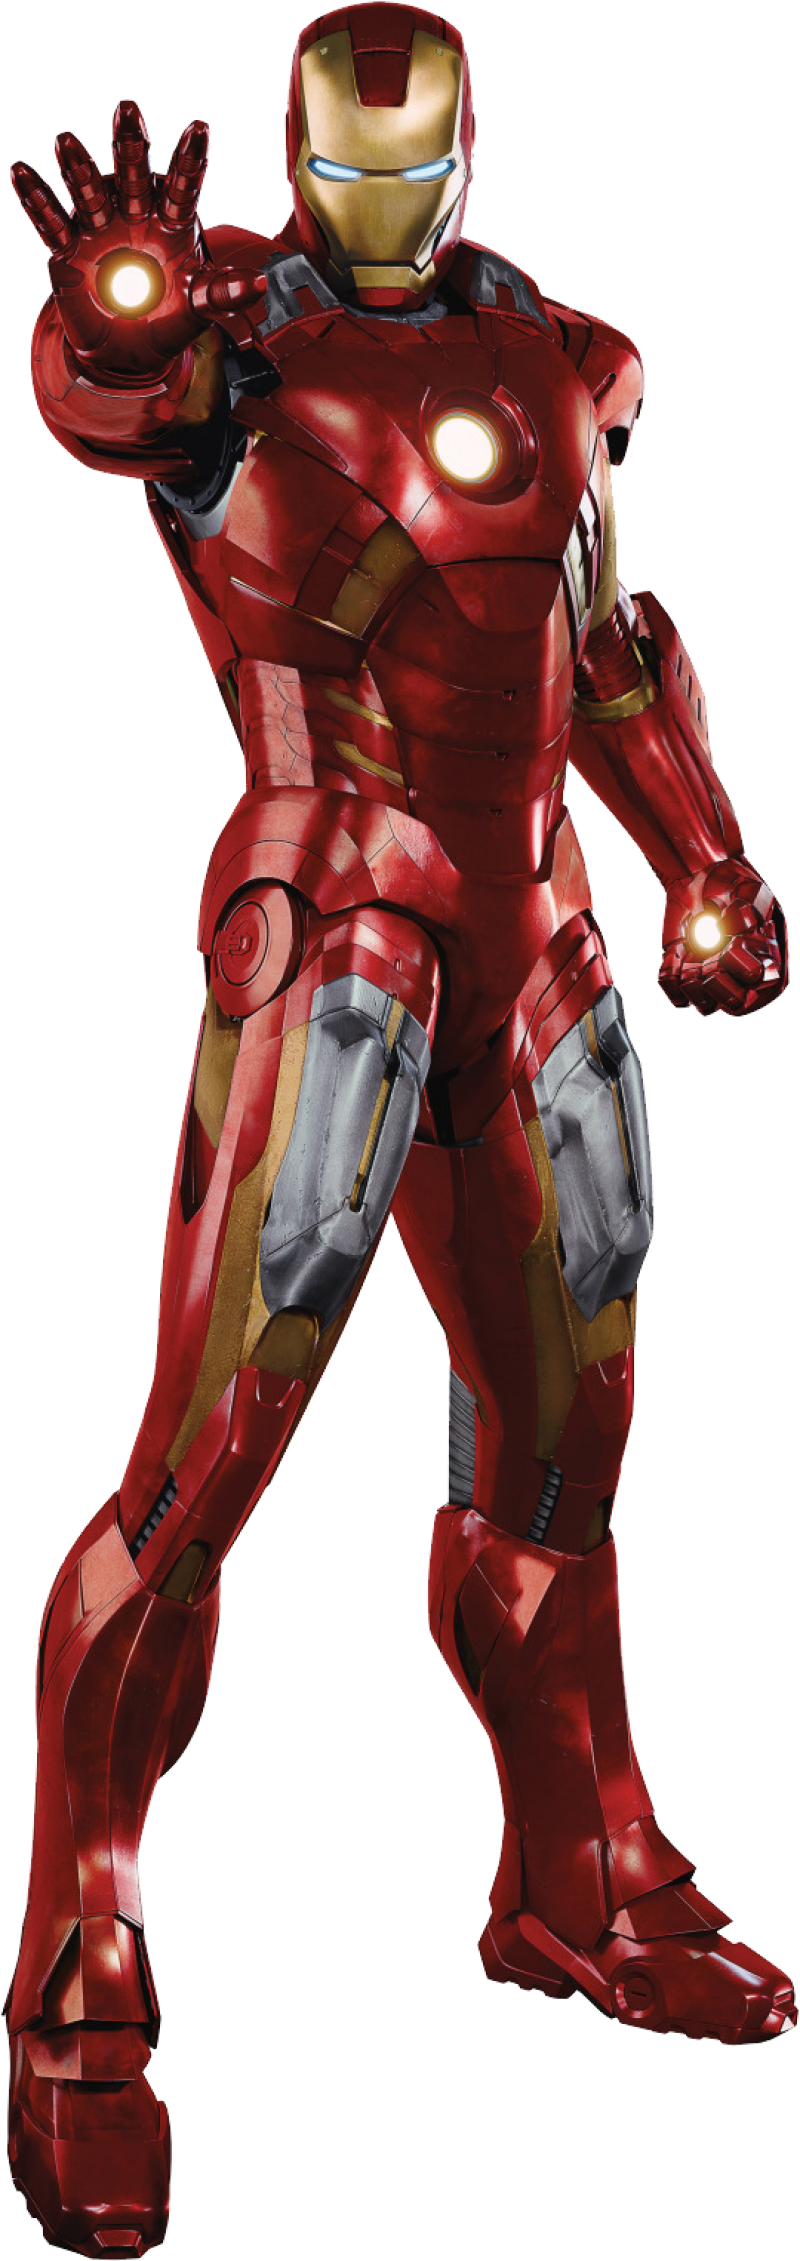 Ironman Flying PNG Image